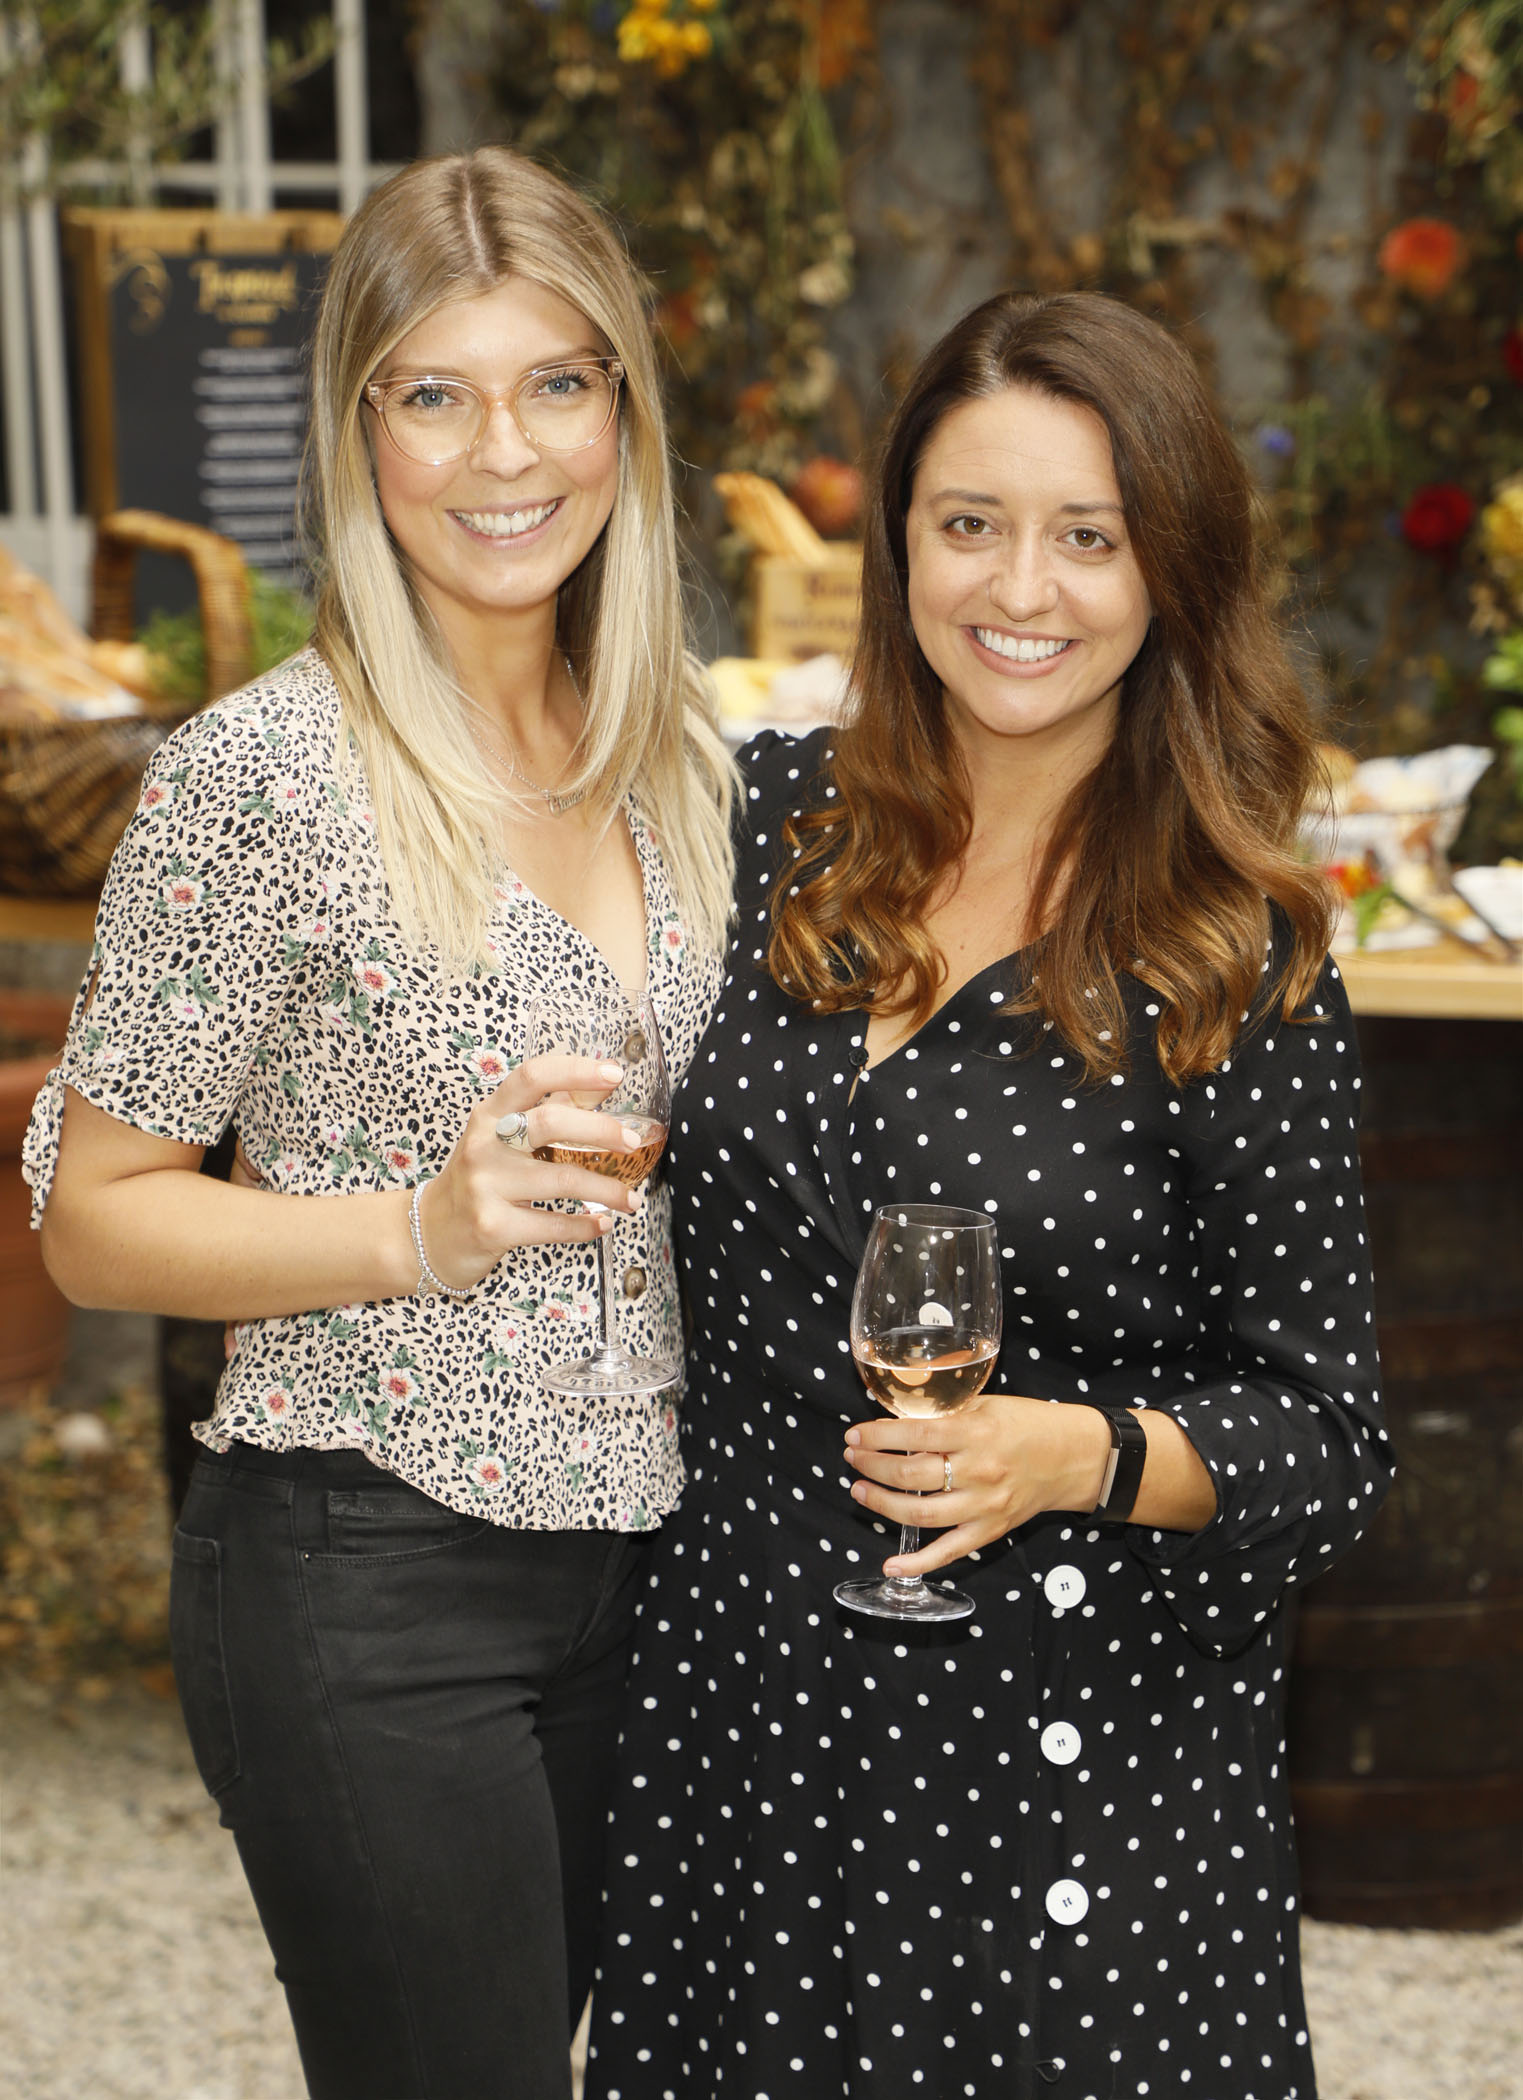 Claudia Langford and Jess Corcoran at the Centra 'Wines We Love' event in Dublin. Photo: Kieran Harnett